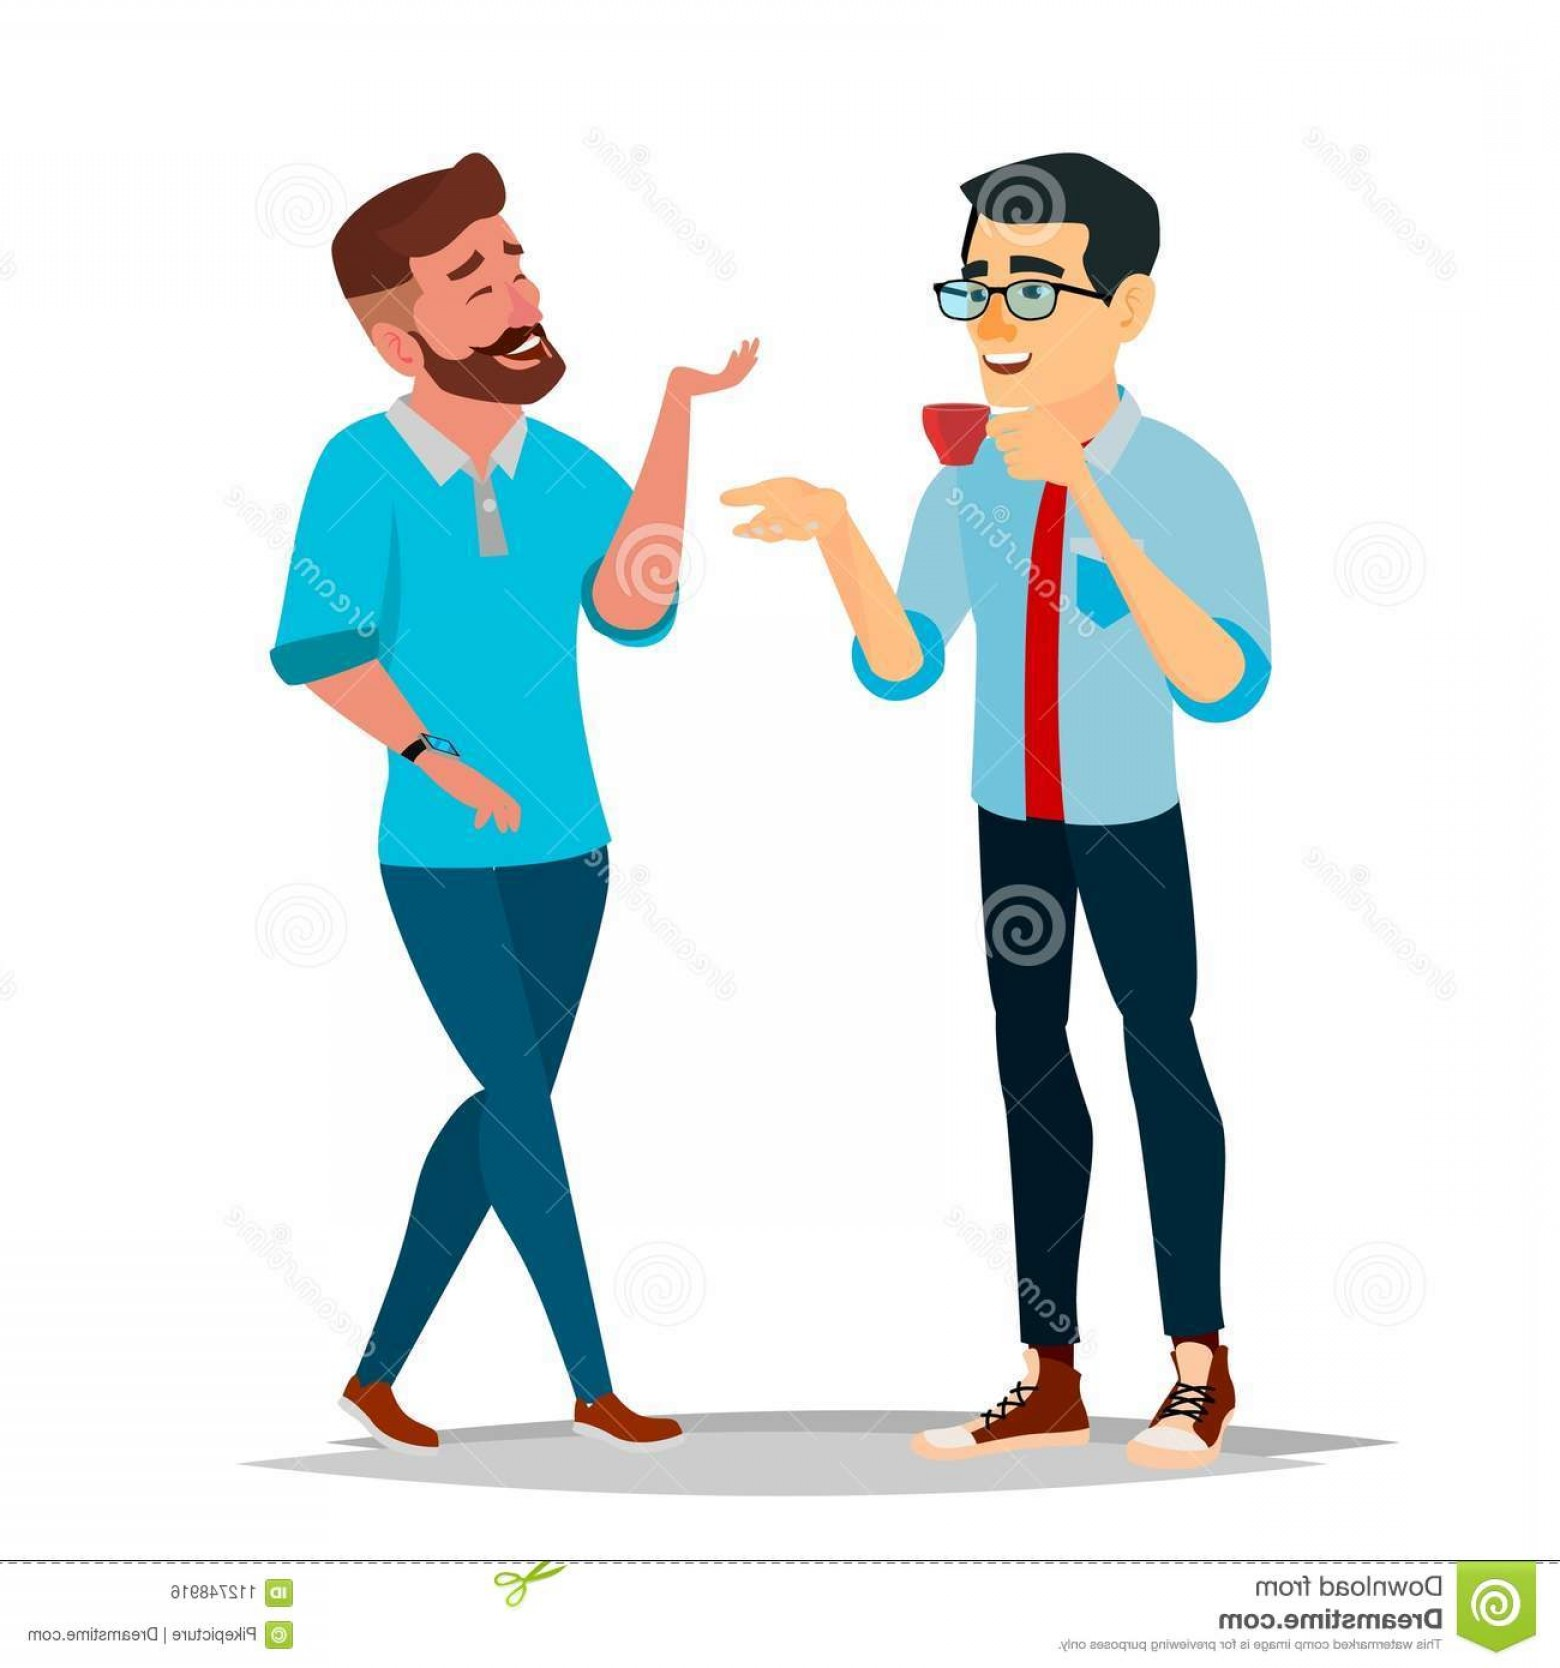 Two People Talking Vector Art: Talking Men Vector Laughing Friends Office Colleagues Communicating Male Meeting Conversation Analysis Concept Business Person Image